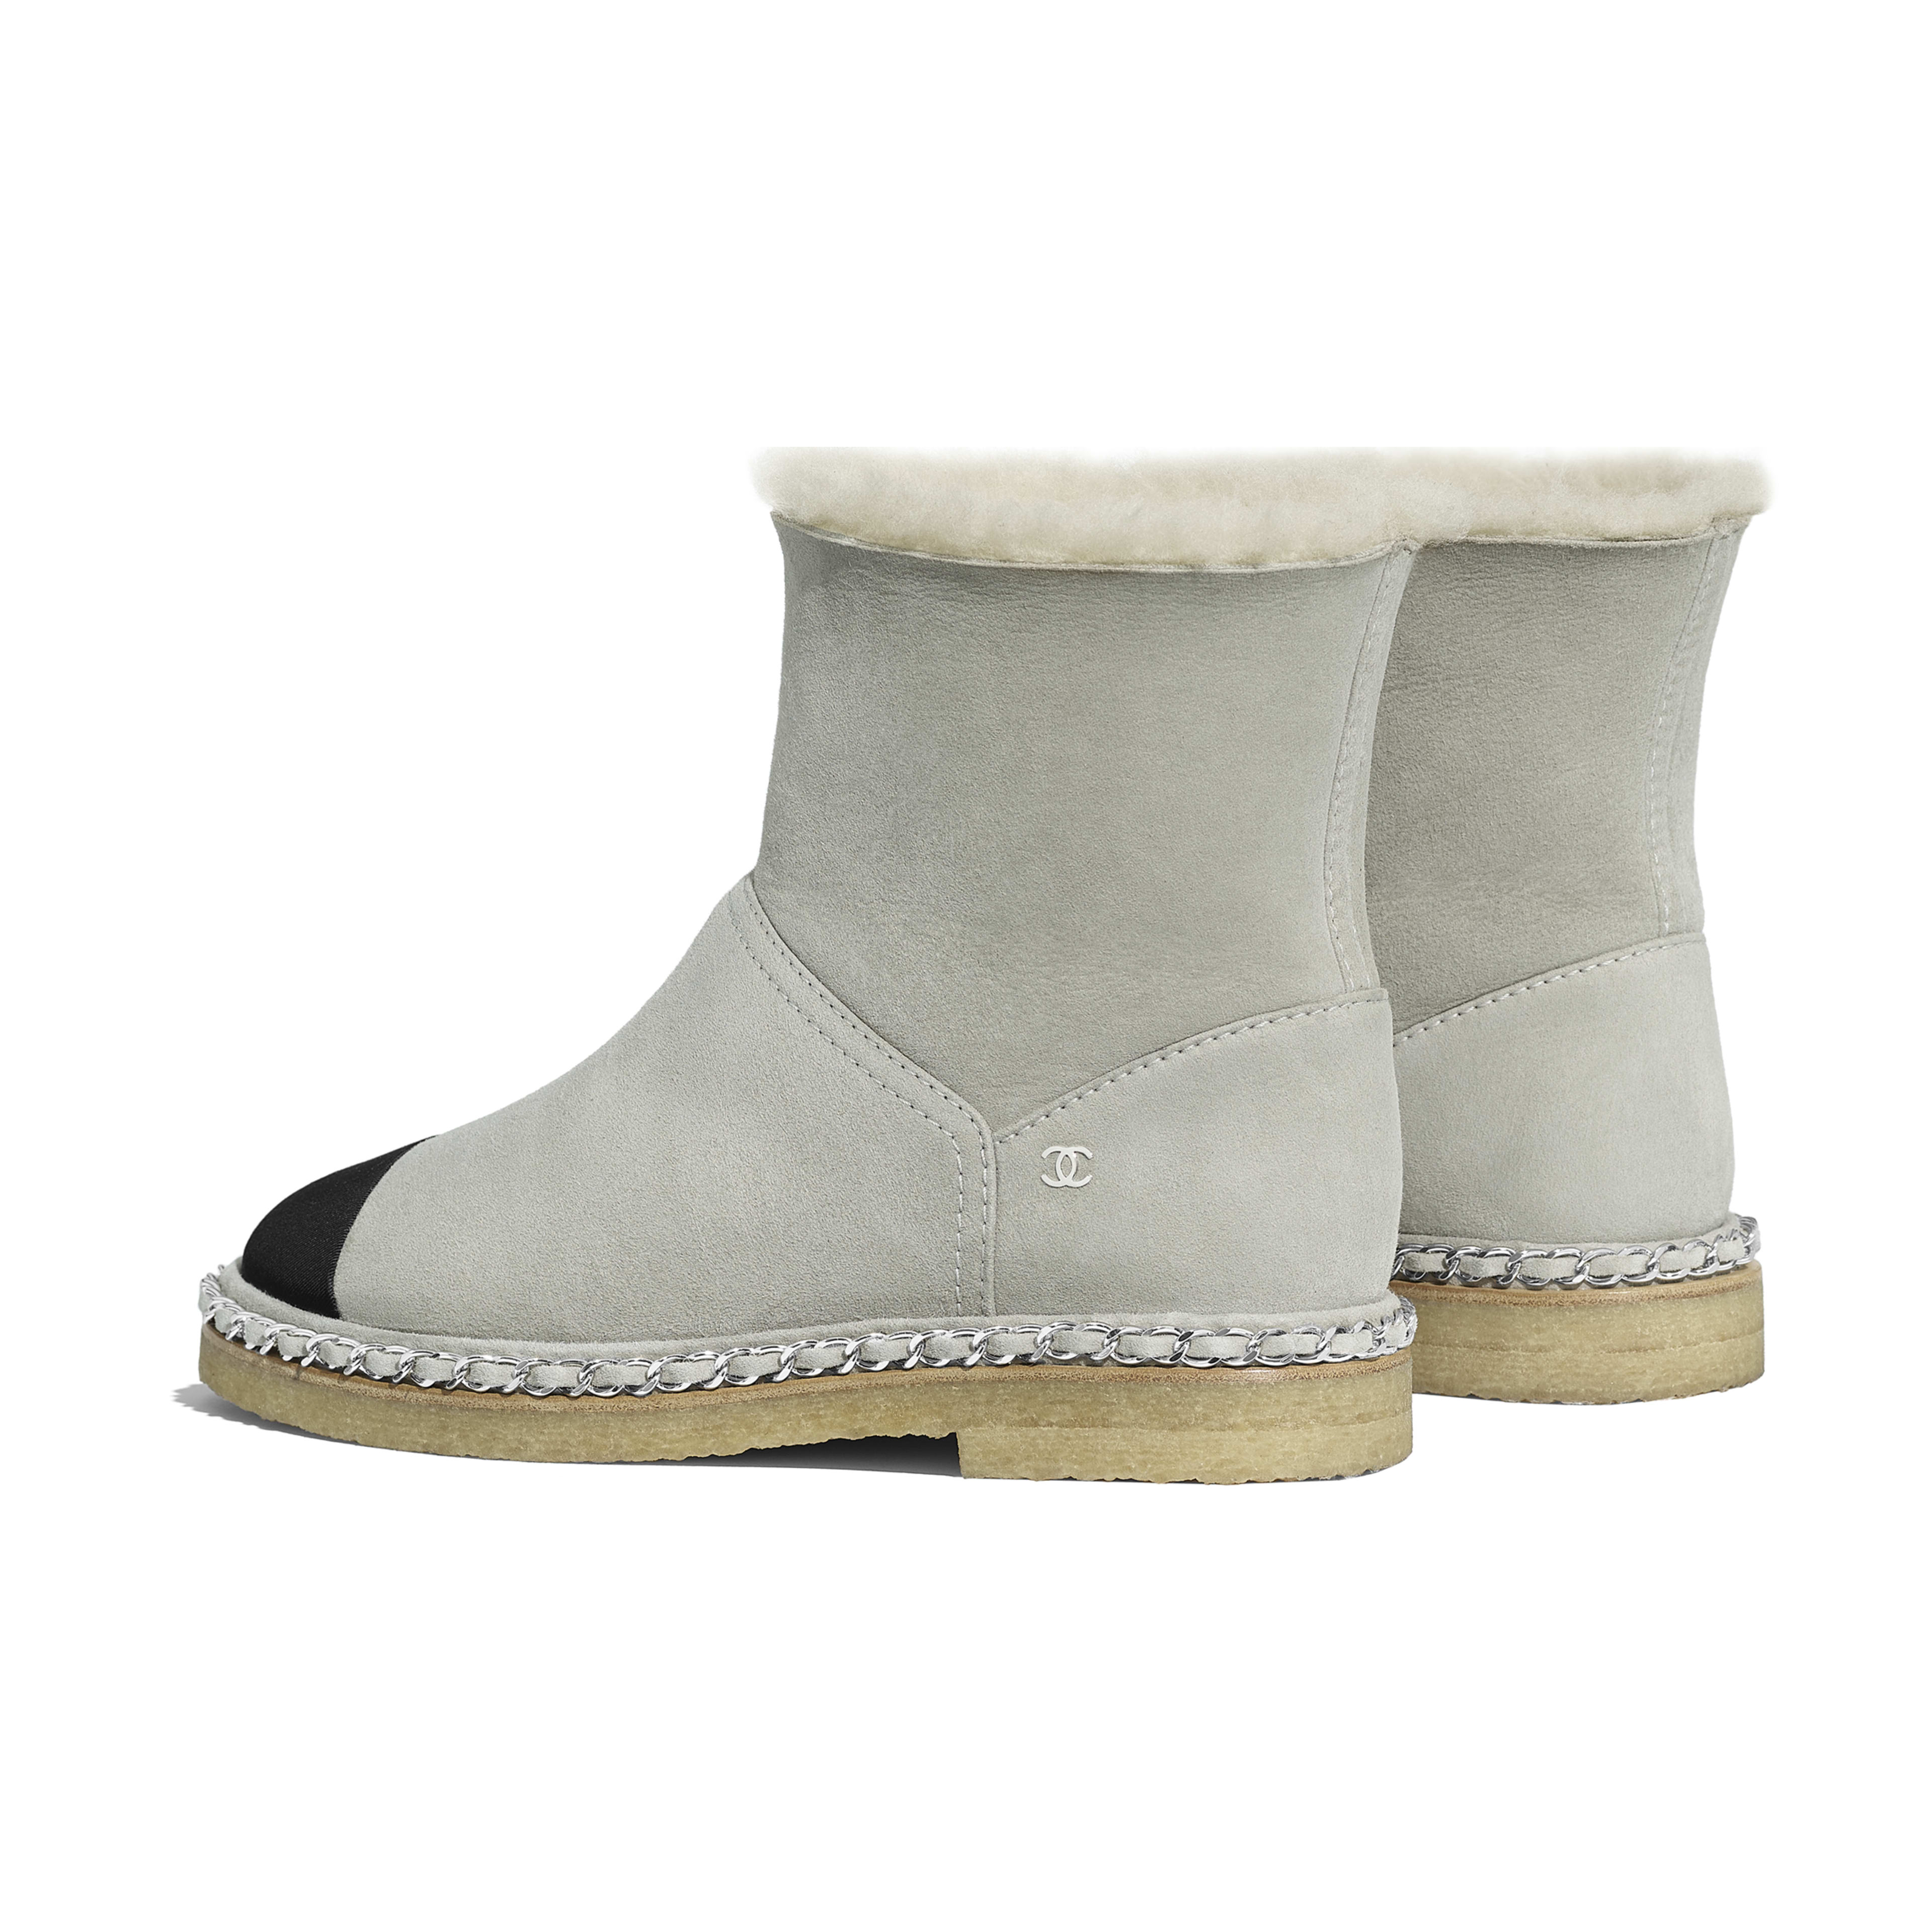 Ankle Boots - Gray & Black - Shearling Lambskin & Grosgrain - Other view - see full sized version